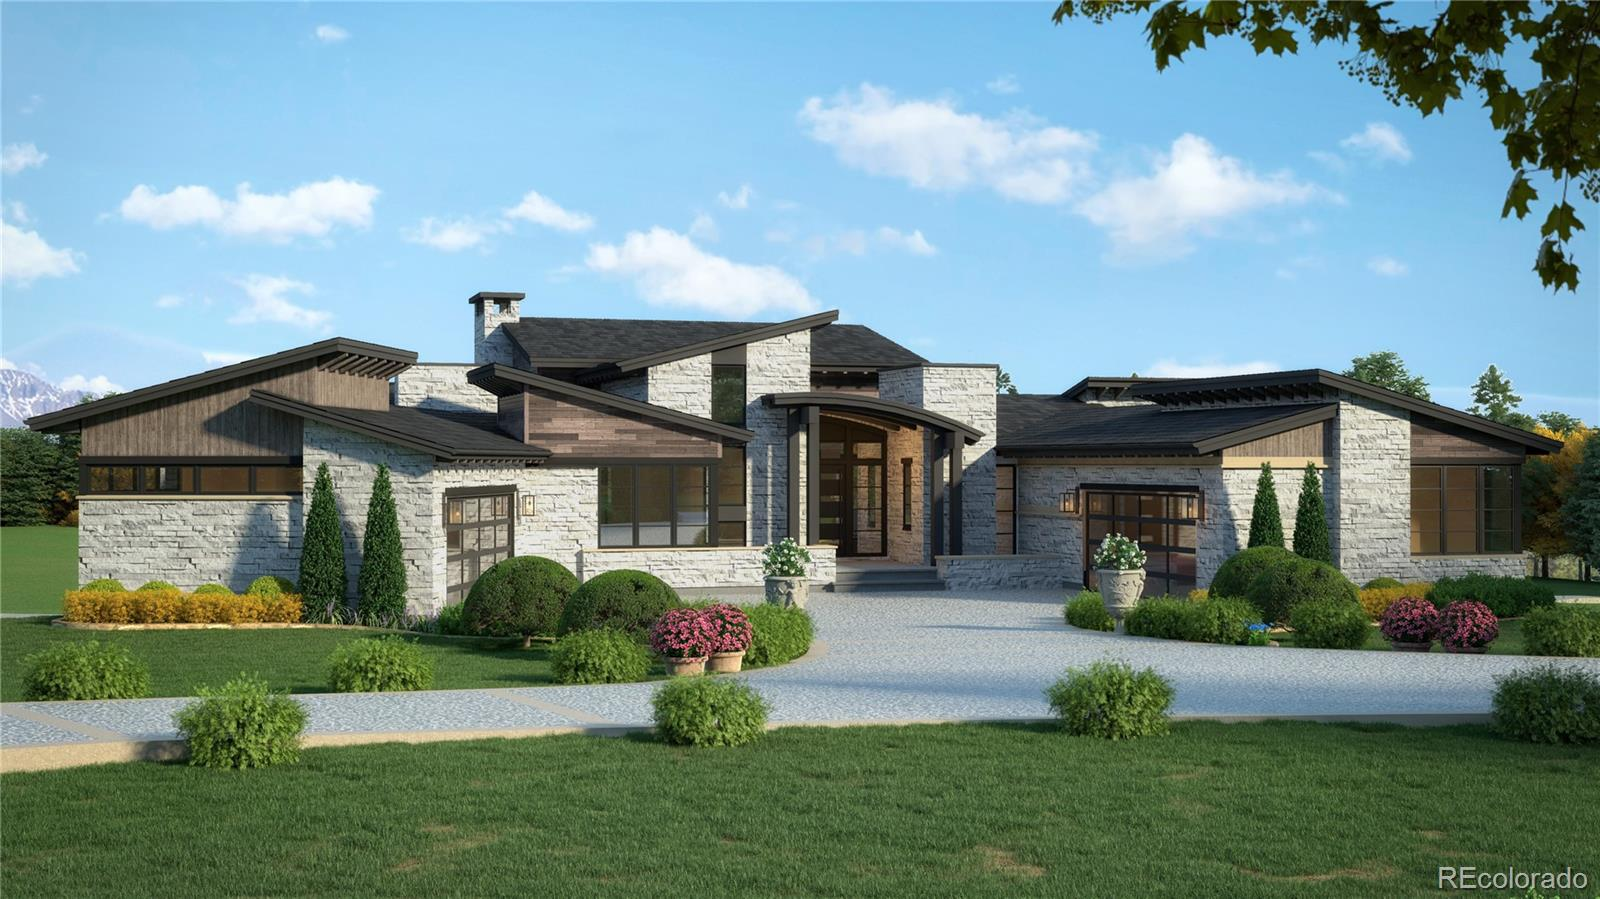 Amazing Sterling Custom Home, with privacy, views of Longs Peak and the course.  This treed lot offers the serenity you have been looking for in a custom home in a gated golf community within walking distance to the driving range and clubhouse at CGC.  Sterling Custom Homes creates award winning floorplans and craftsmanship beyond any you will find.  Colorado Golf Club is a nationally acclaimed golf experience with a champion golf course, par 3 course and world class clubhouse and pool facility.  CGC is a gated community located in Parker Colorado with easy access to DIA, Lone Tree, south business park and Downtown Denver and superior amenities minutes from your new custom home.   This home will create an explosion of excitement when you walk in the door.  Outstanding finishes and floor plan, and views of the mountains.  Main Floor Master with extensive entertaining space both indoor and outdoor living with the highest of quality both exterior and interior. Golf Cart Storage Area within the garage sizing about 19 x 11